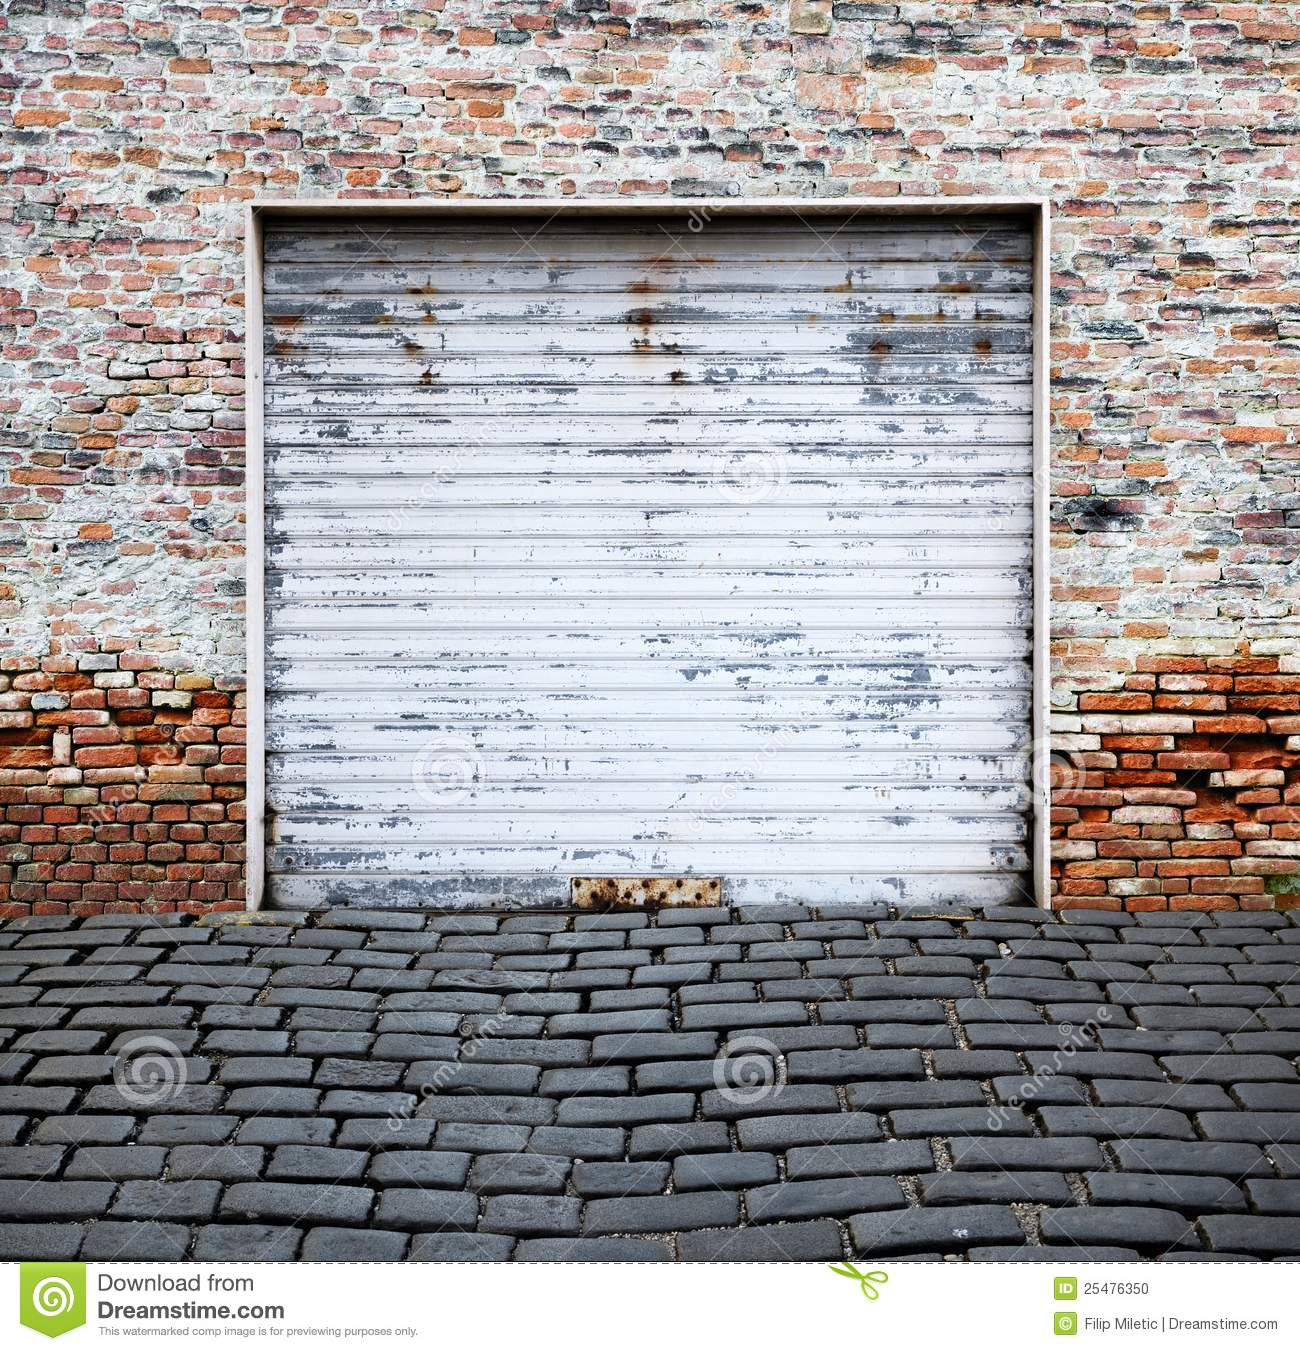 picture design home style door wonderful phenomenal rollup doors roll com up depot garage asyfreedomwalk